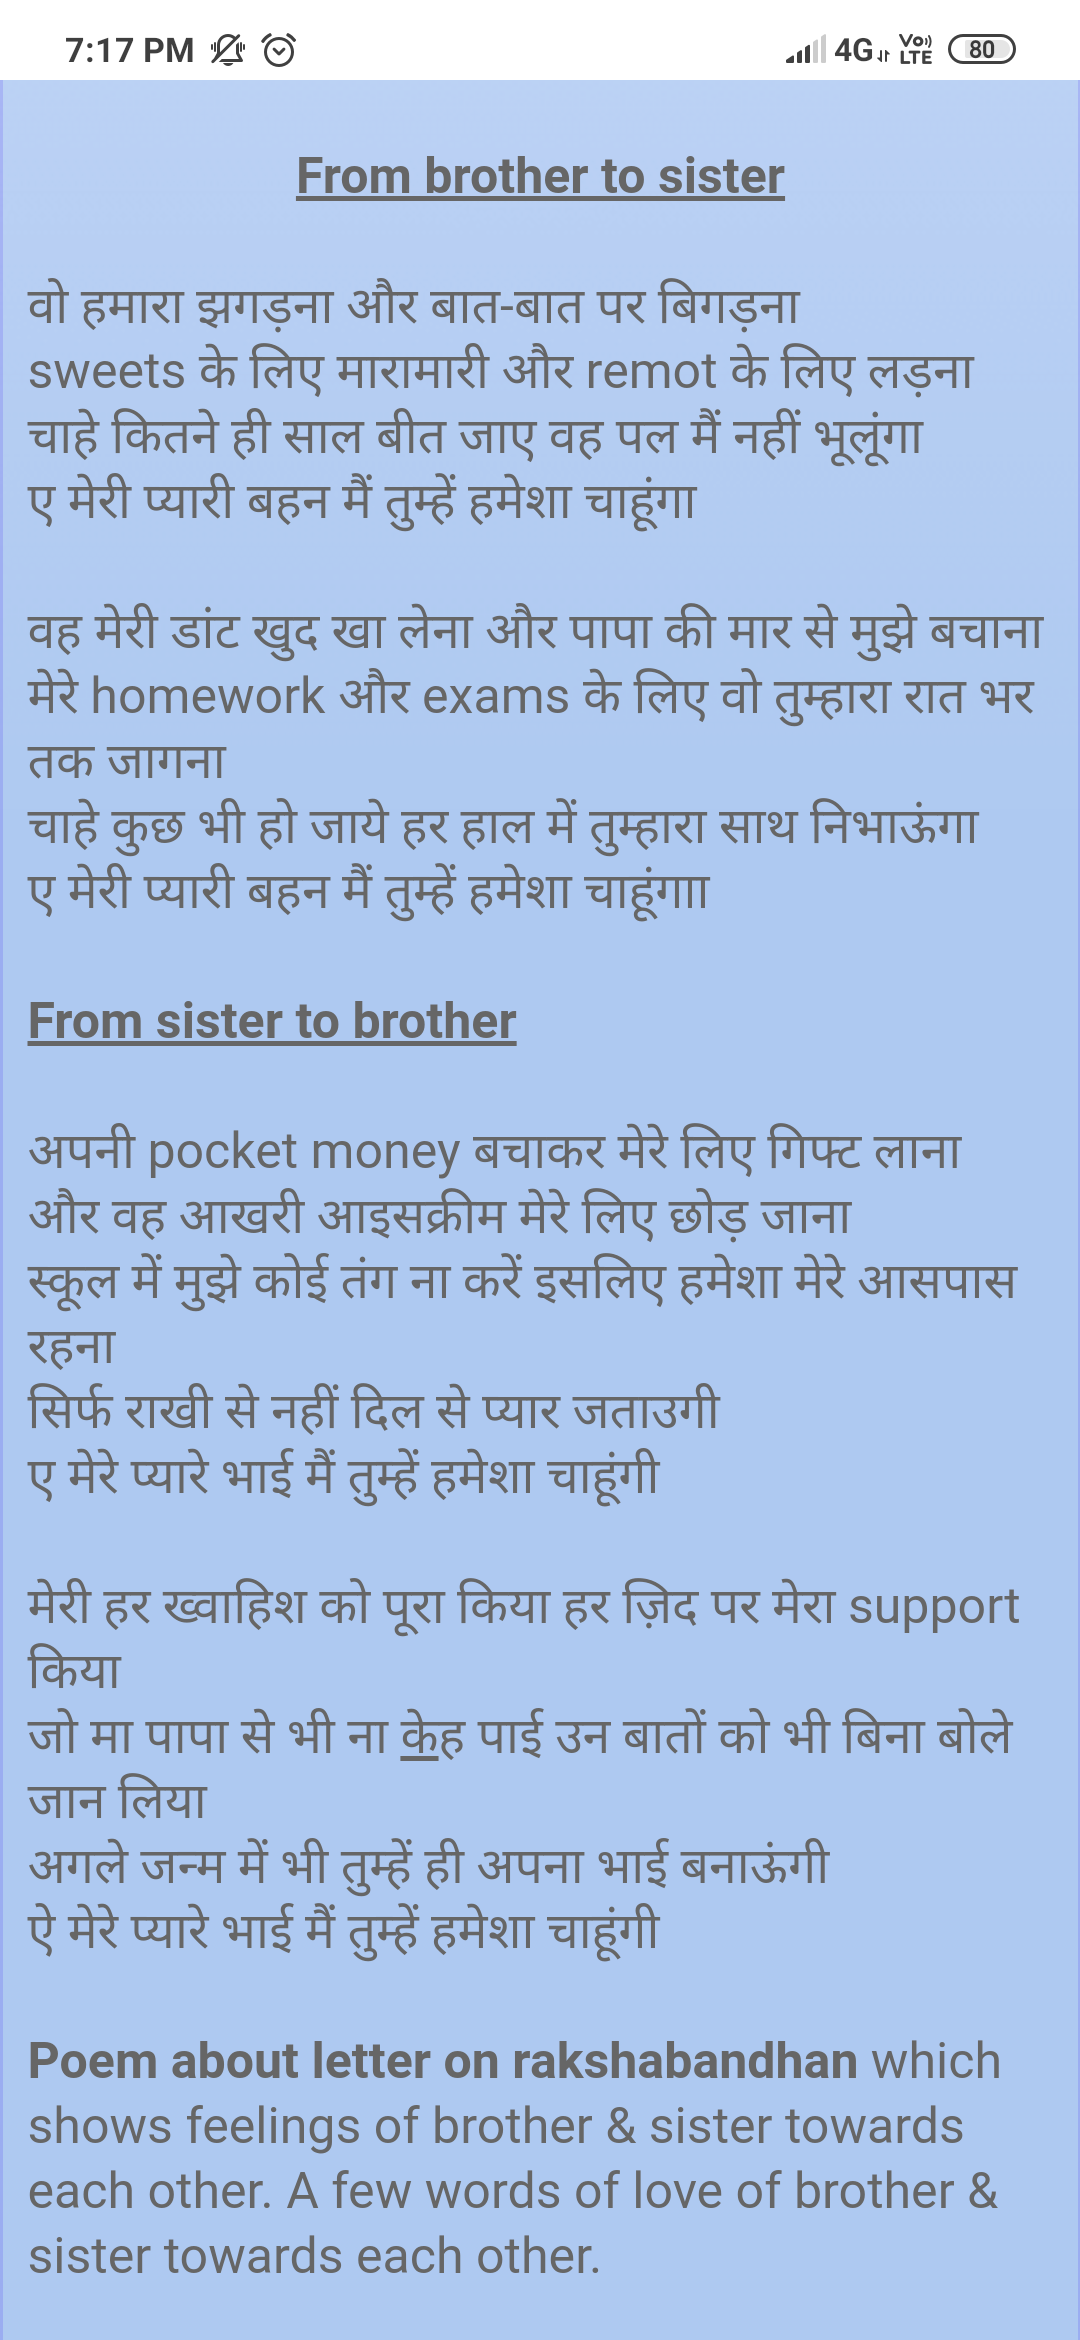 Poem about letter on rakshabandhan which shows feelings of